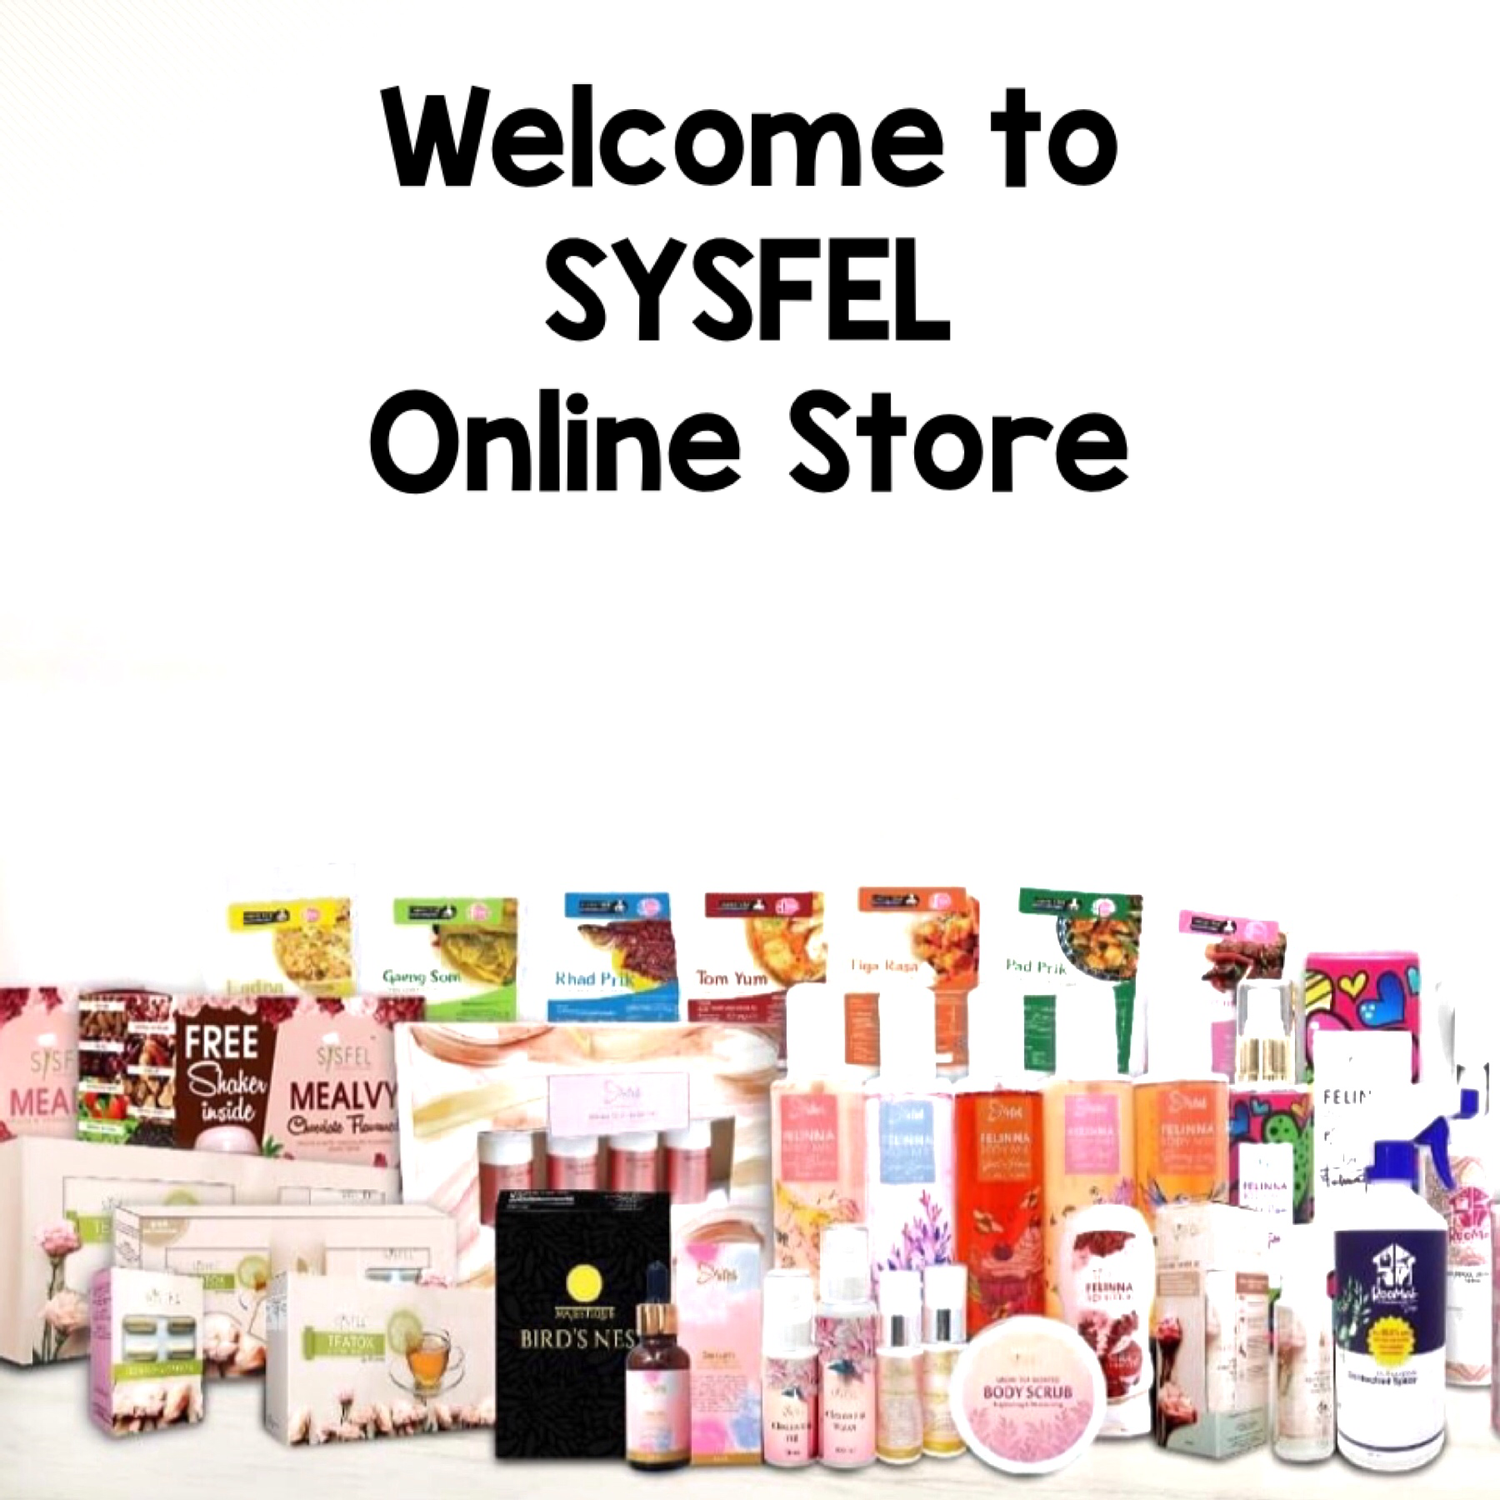 Sysfel Online Store  